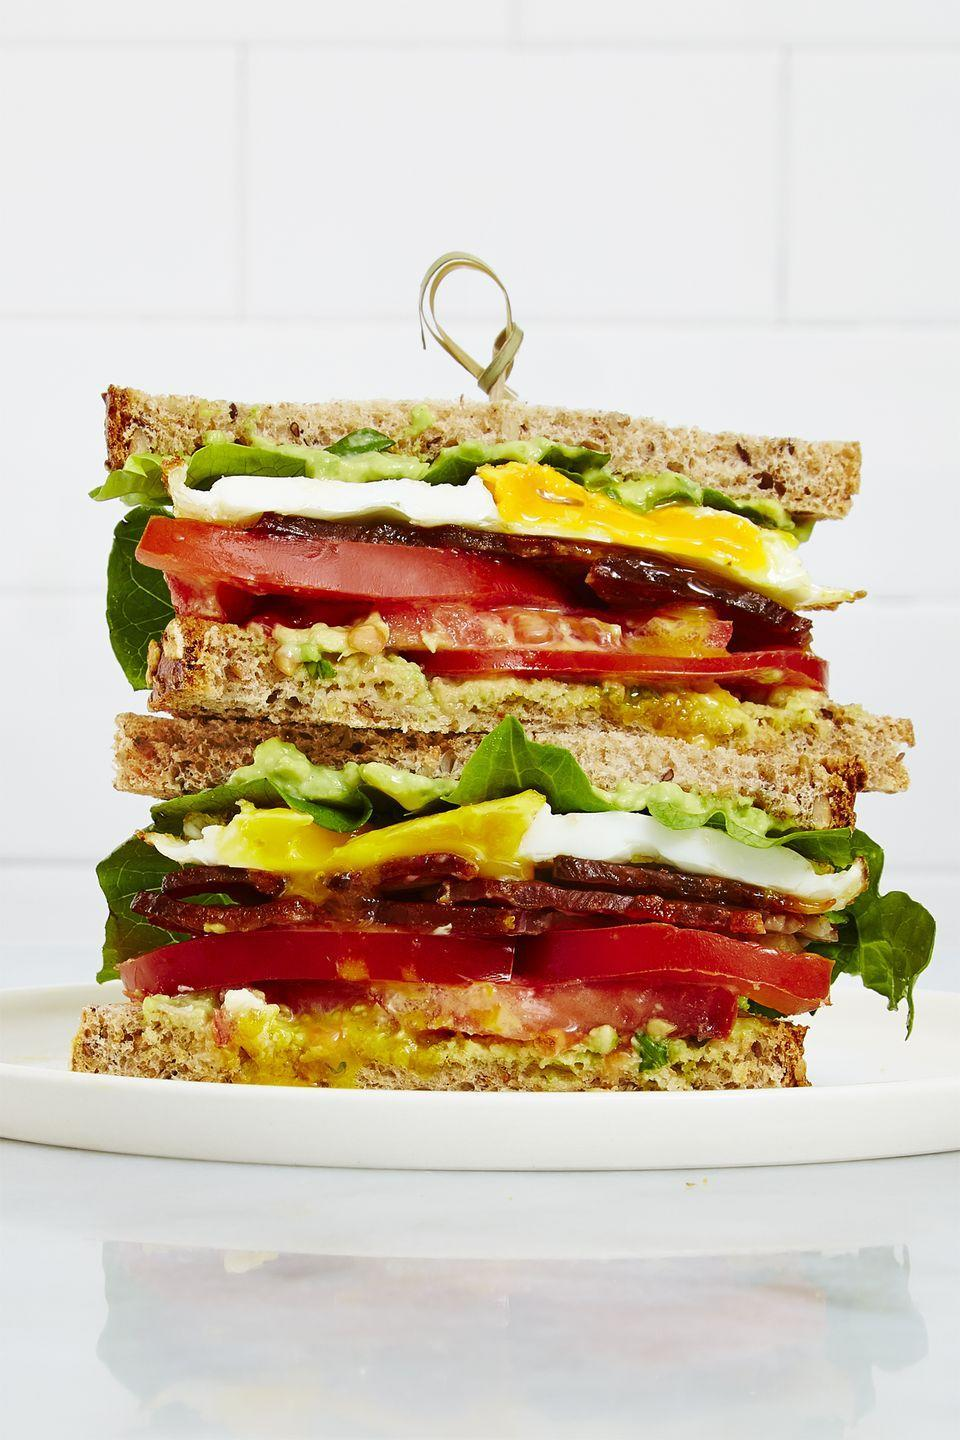 "<p>You're just 15 minutes away from the ultimate breakfast sandwich.</p><p><em><a href=""https://www.goodhousekeeping.com/food-recipes/easy/a34115/paprika-parmesan-granola-bars/"" rel=""nofollow noopener"" target=""_blank"" data-ylk=""slk:Get the recipe for Fully Loaded Fried-Egg BLT »"" class=""link rapid-noclick-resp"">Get the recipe for Fully Loaded Fried-Egg BLT »</a></em></p>"